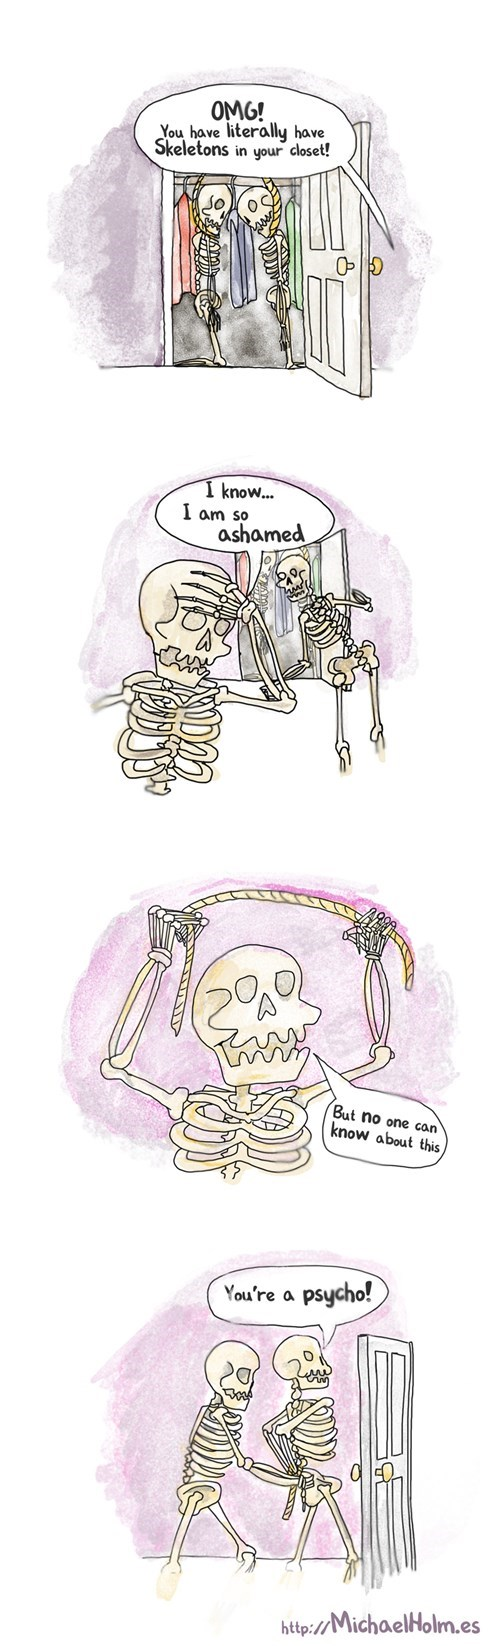 halloween puns skeleton war skeletons web comics - 8356308736